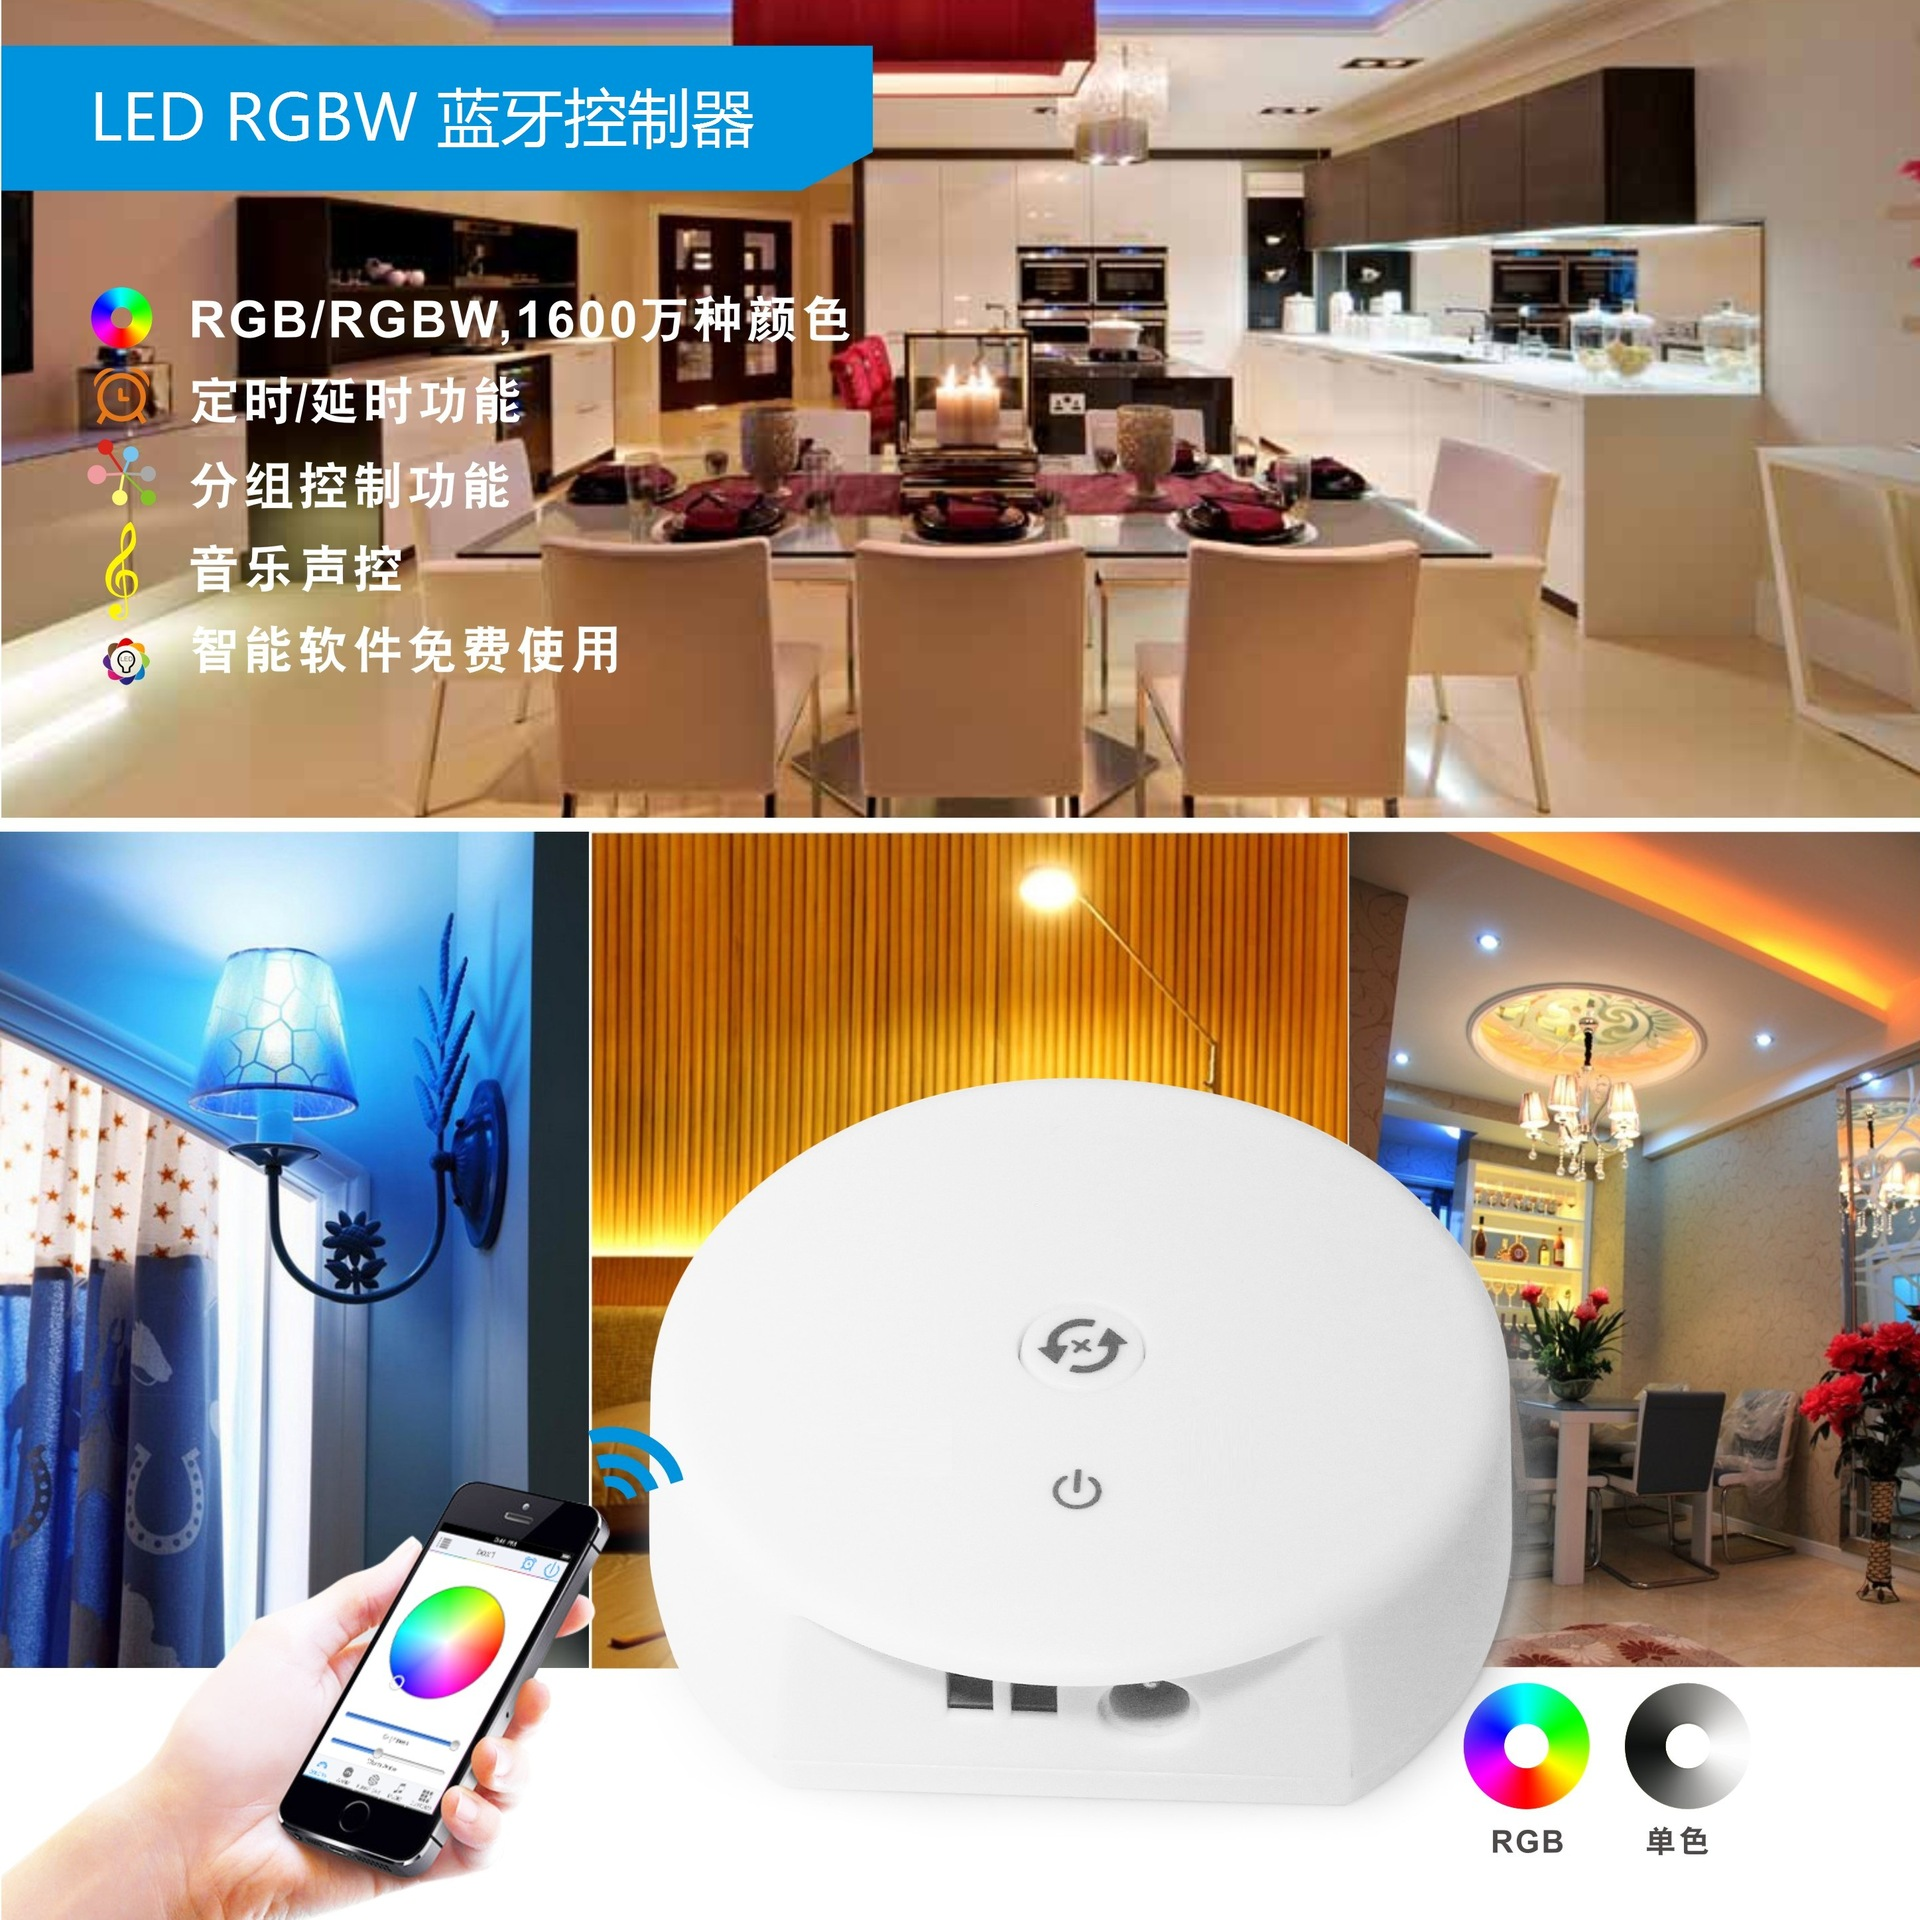 LED low voltage controller Mobile phone intelligent controller RGBW Bluetooth LED controller Music sound controller